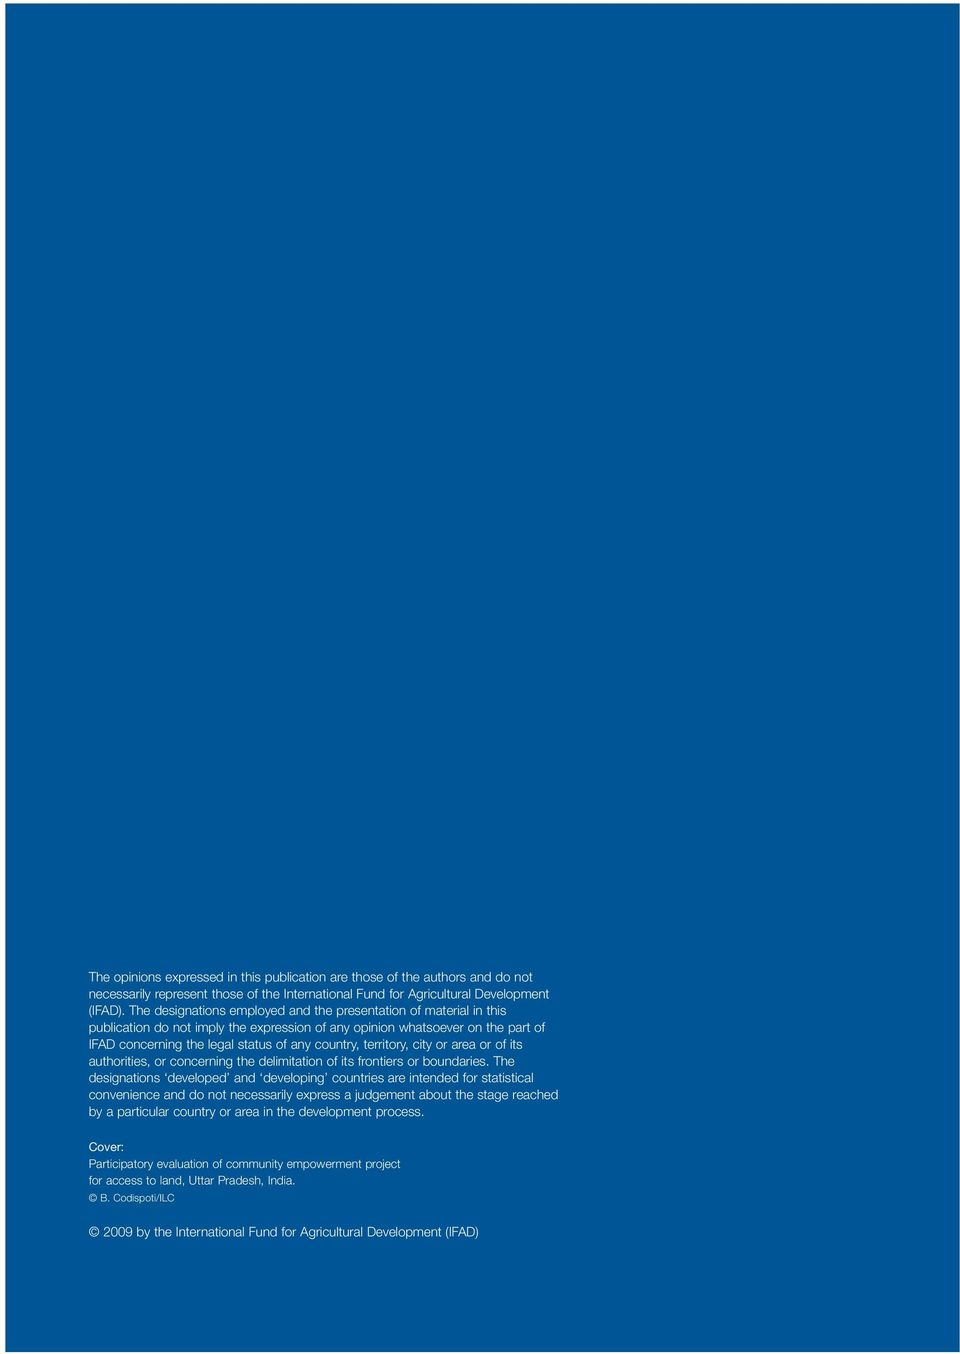 territory, city or area or of its authorities, or concerning the delimitation of its frontiers or boundaries.